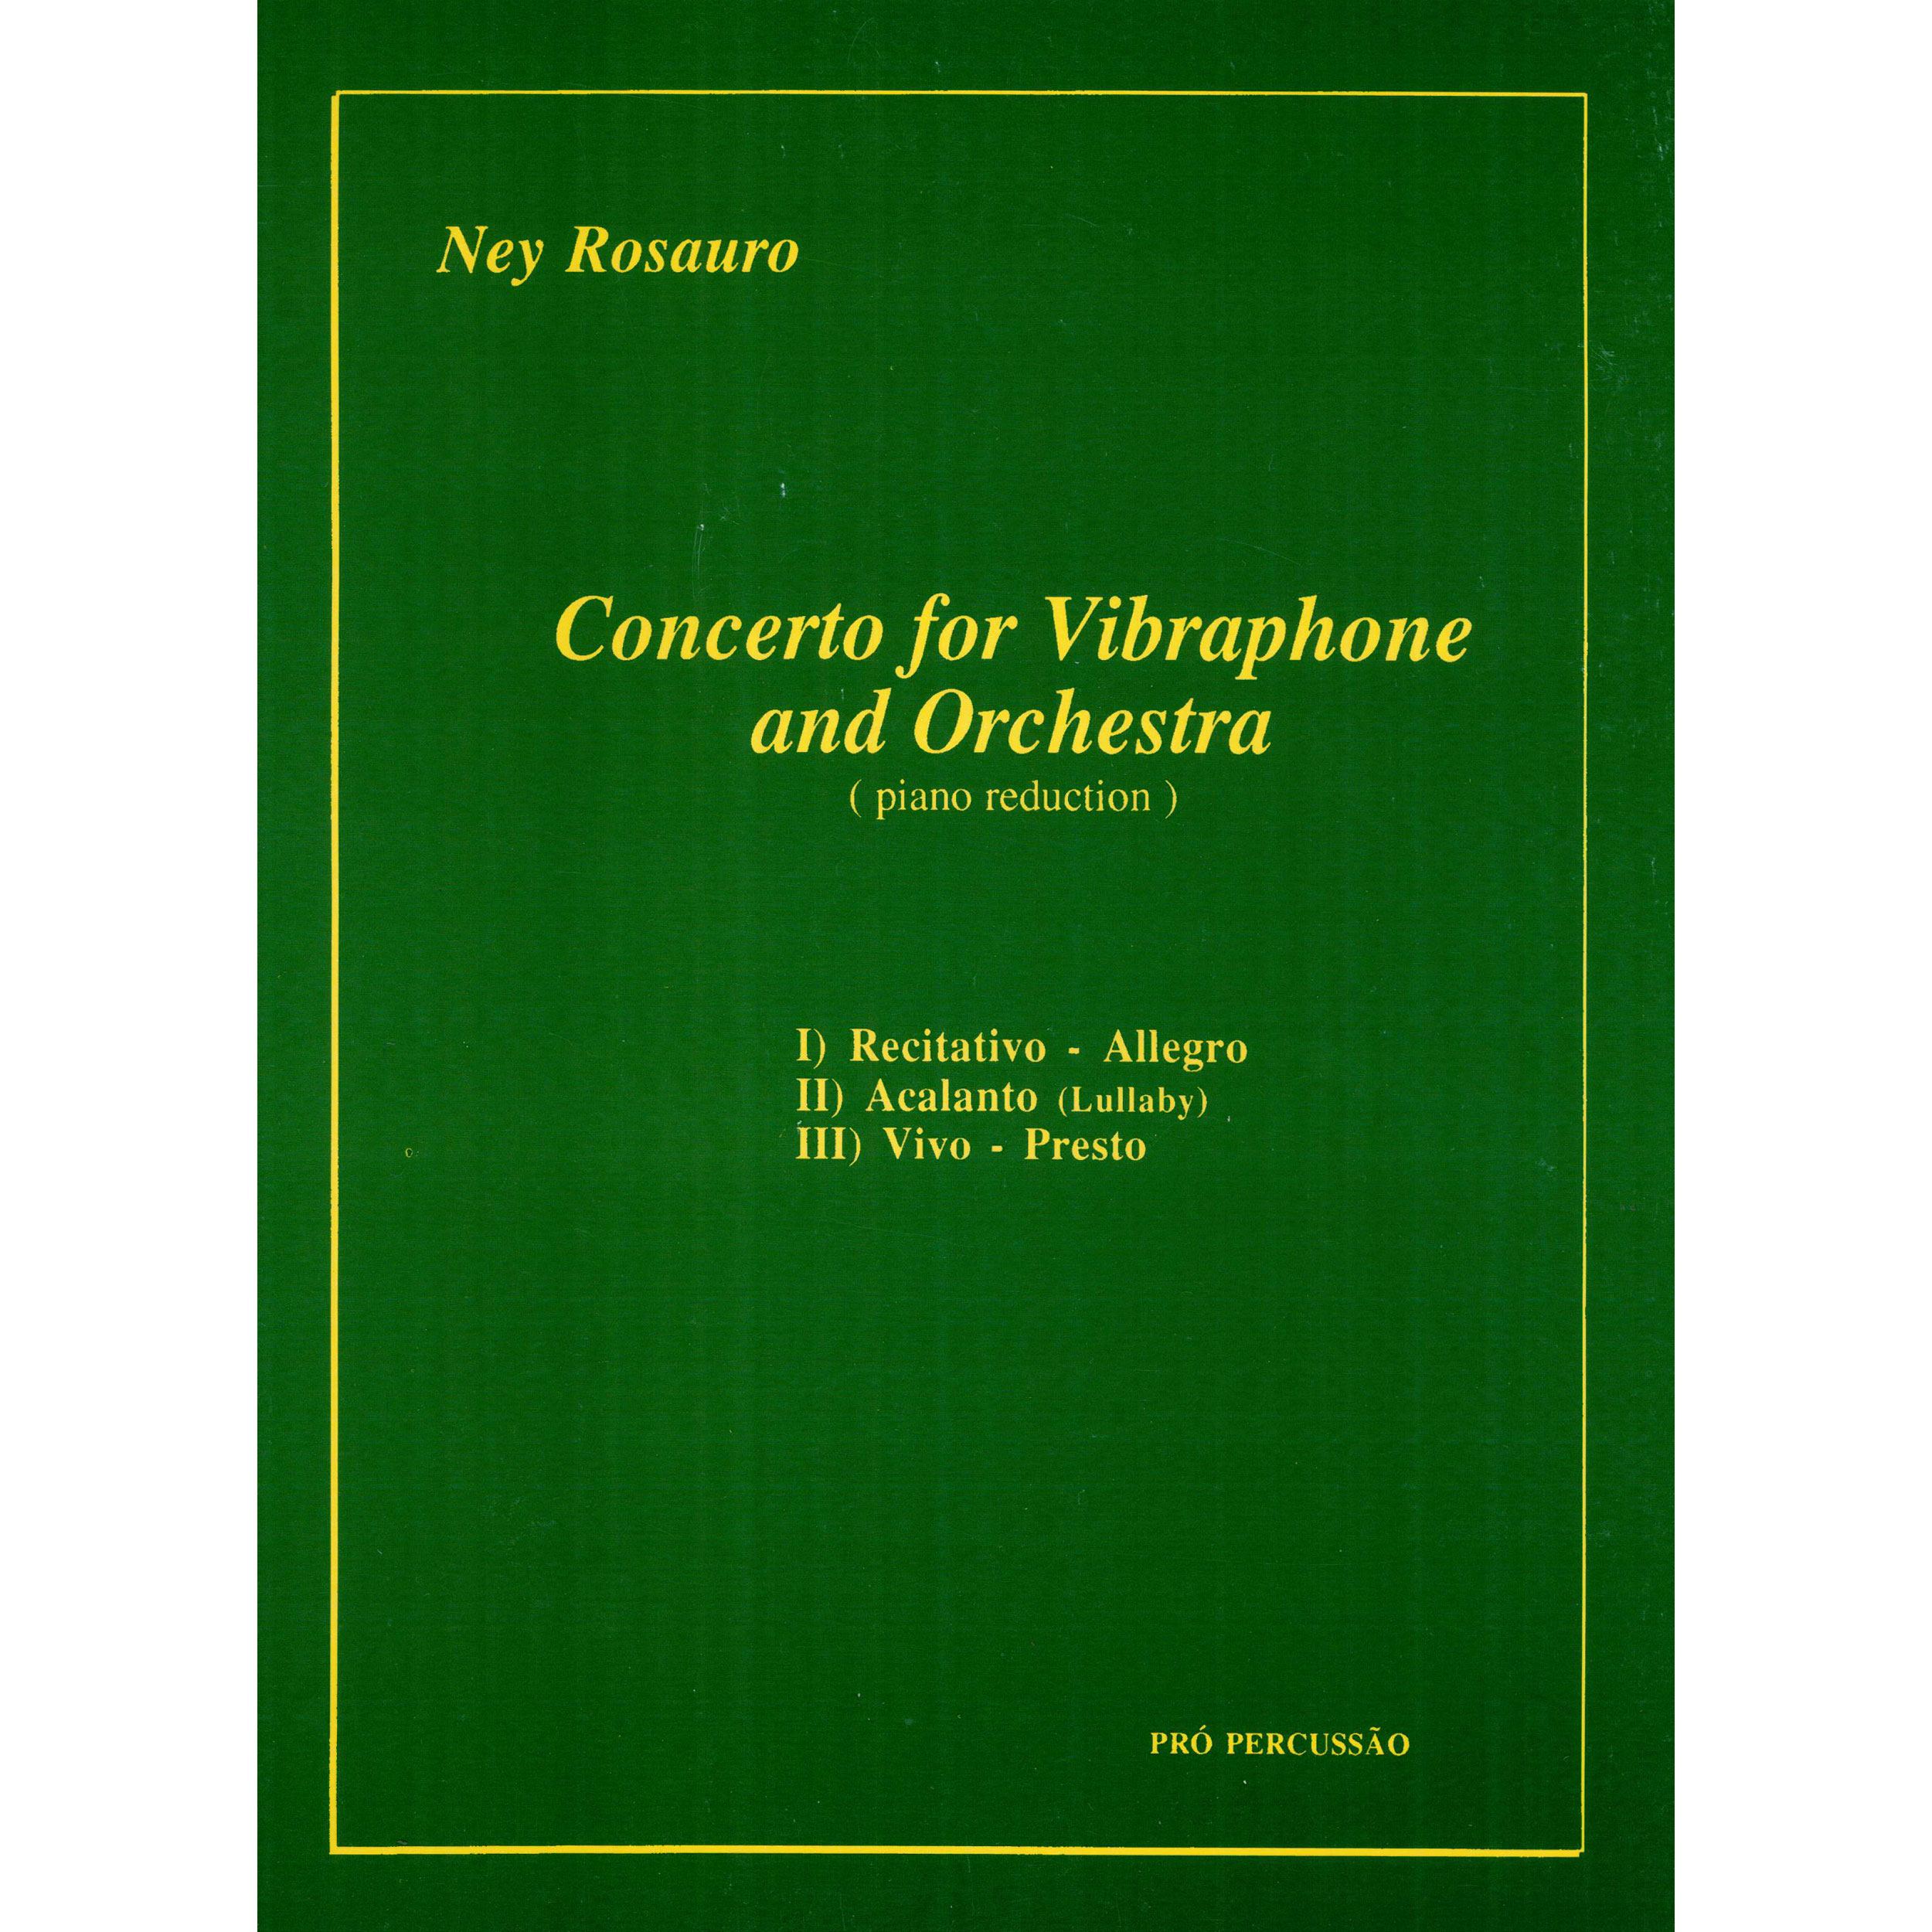 Concerto for Vibraphone and Orchestra (Piano Reduction) by Ney Rosauro